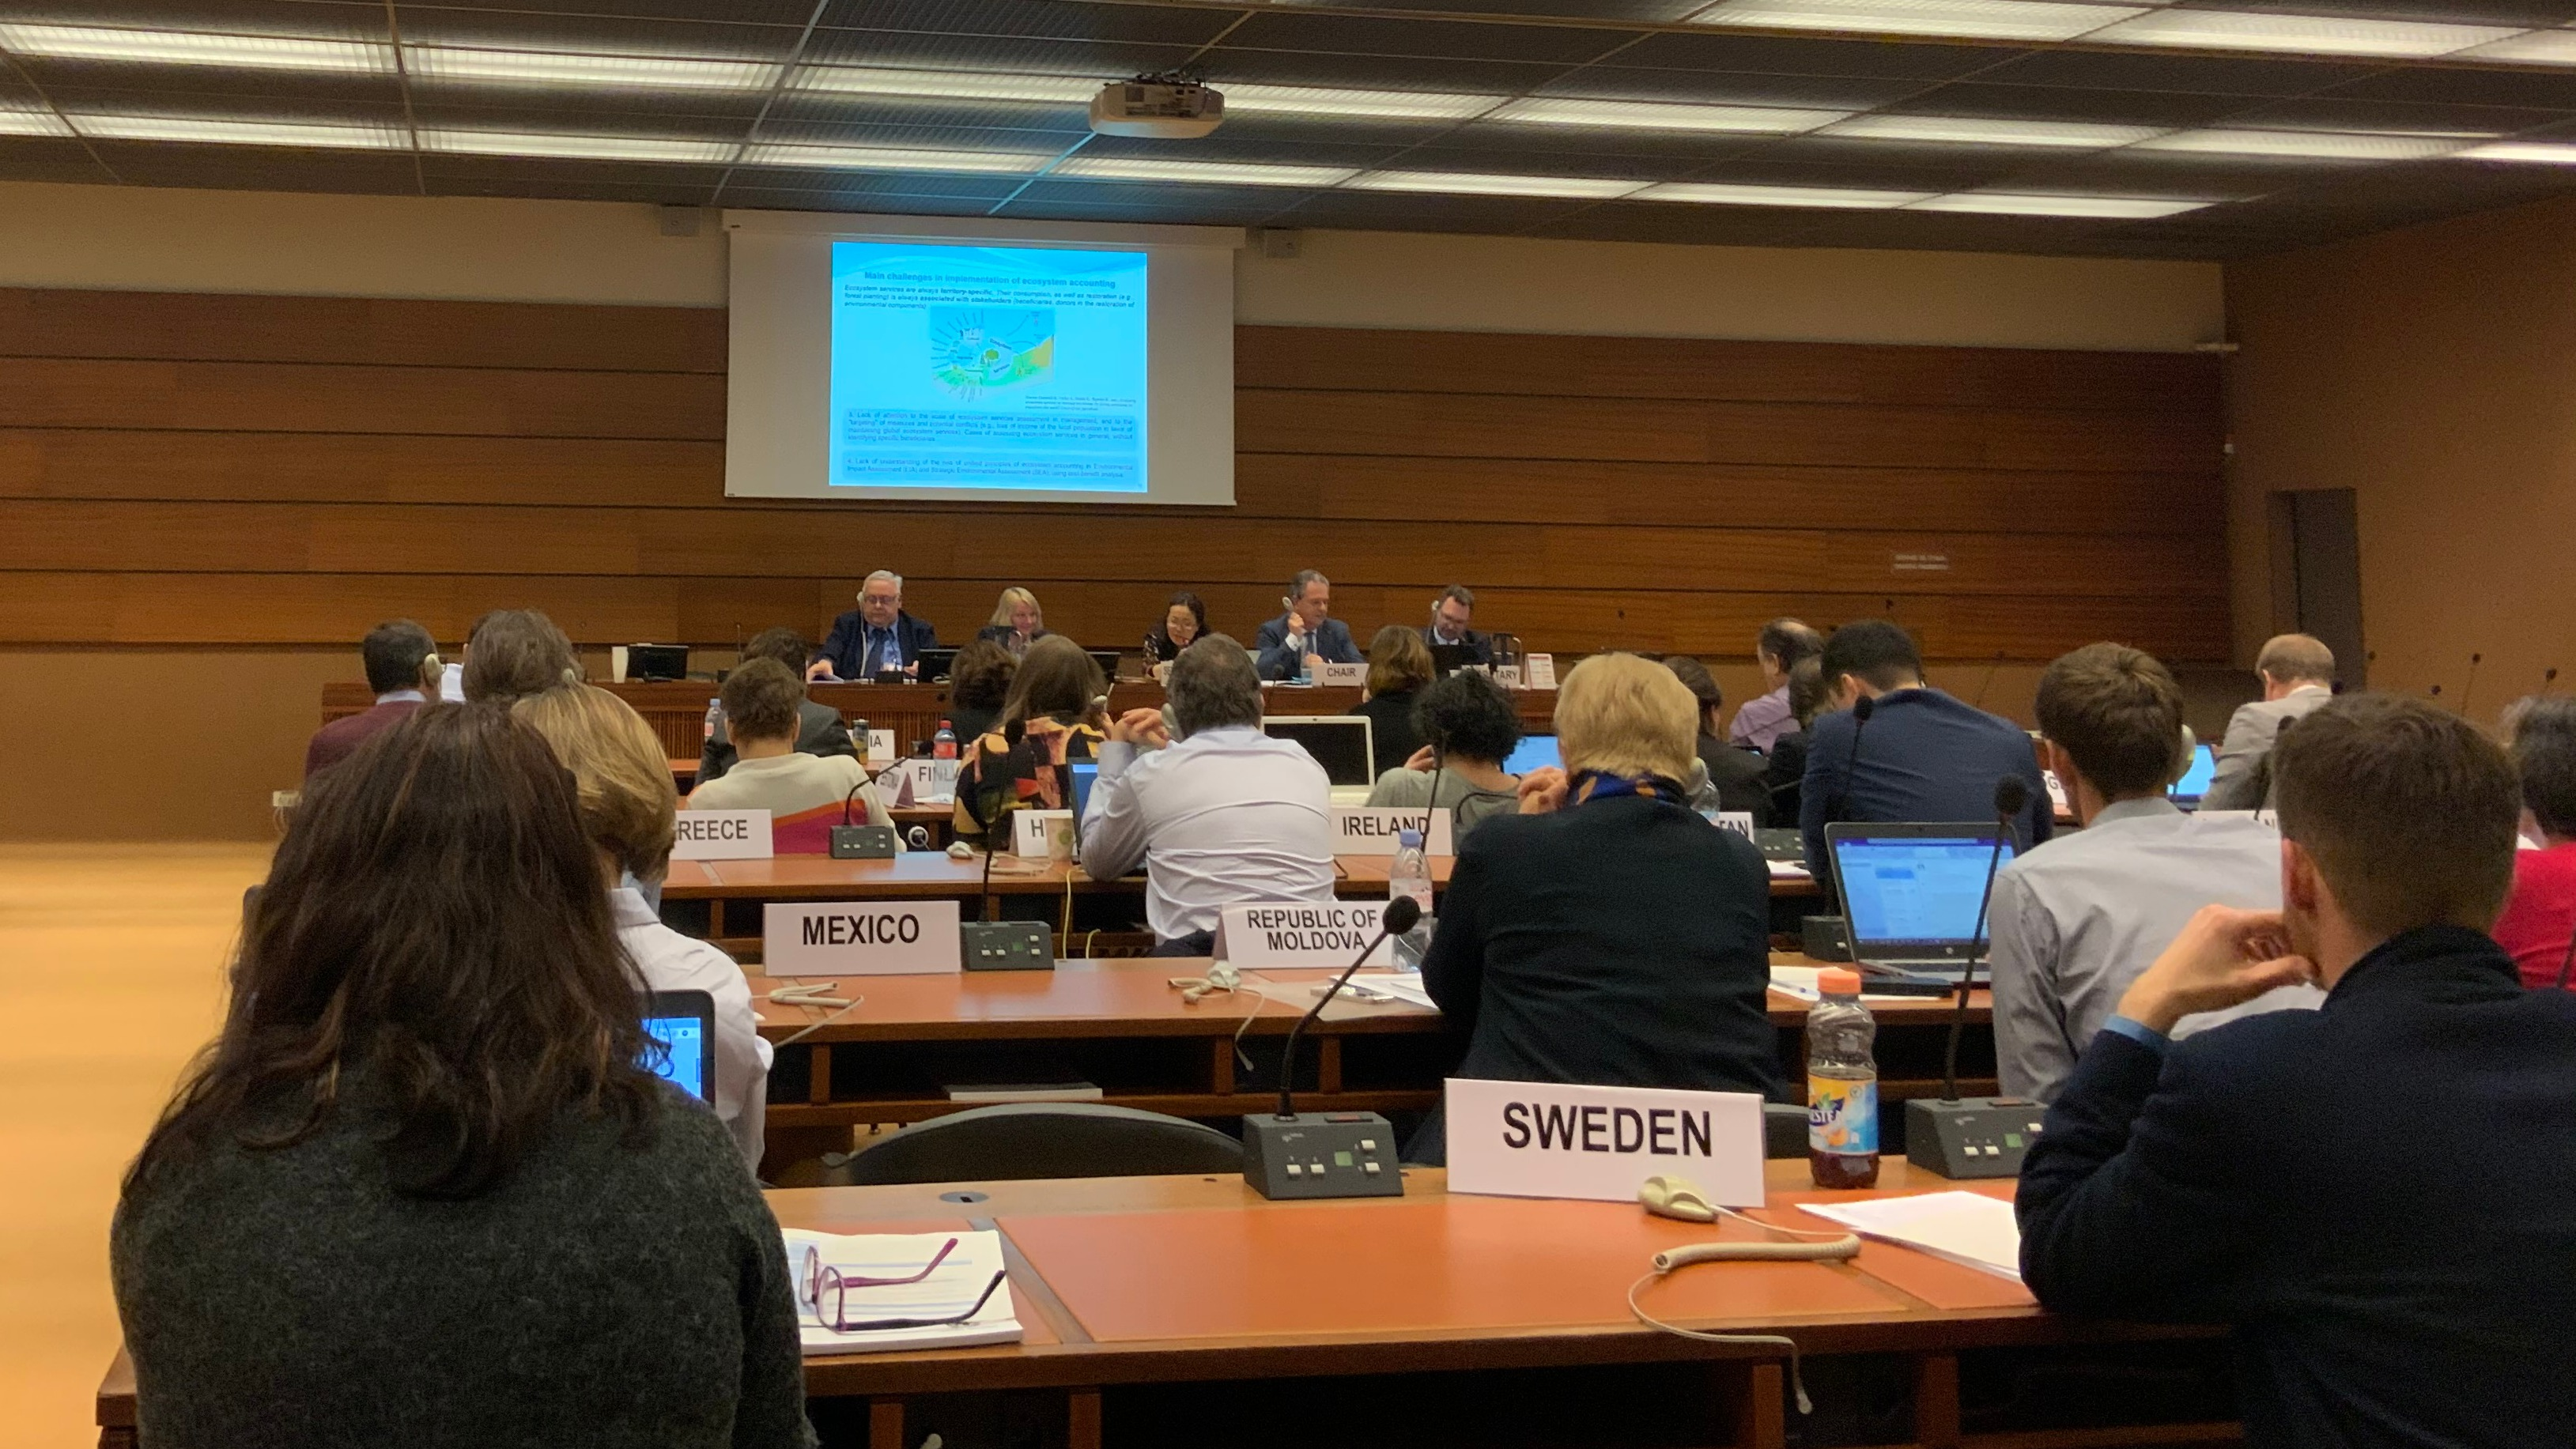 Joint OECD/UNECE Seminar on Implementation of SEEA took place in Geneva